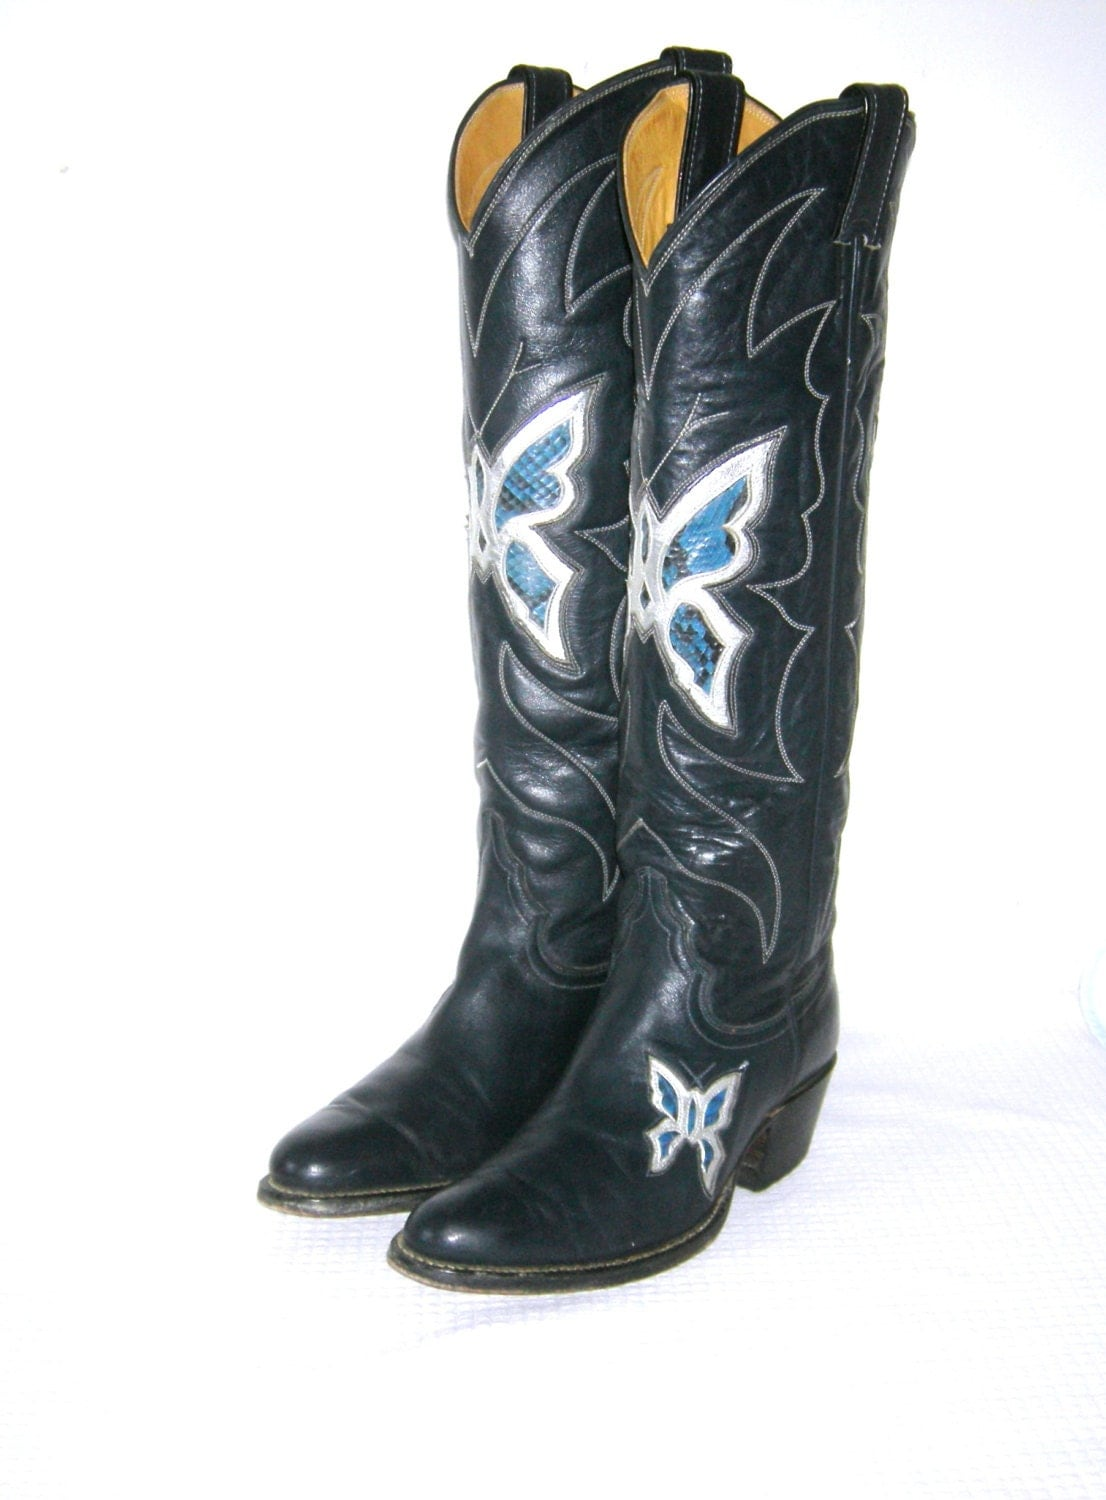 Vintage 1970s Justin Cowboy Boots Butterfly Inlay Snakeskin